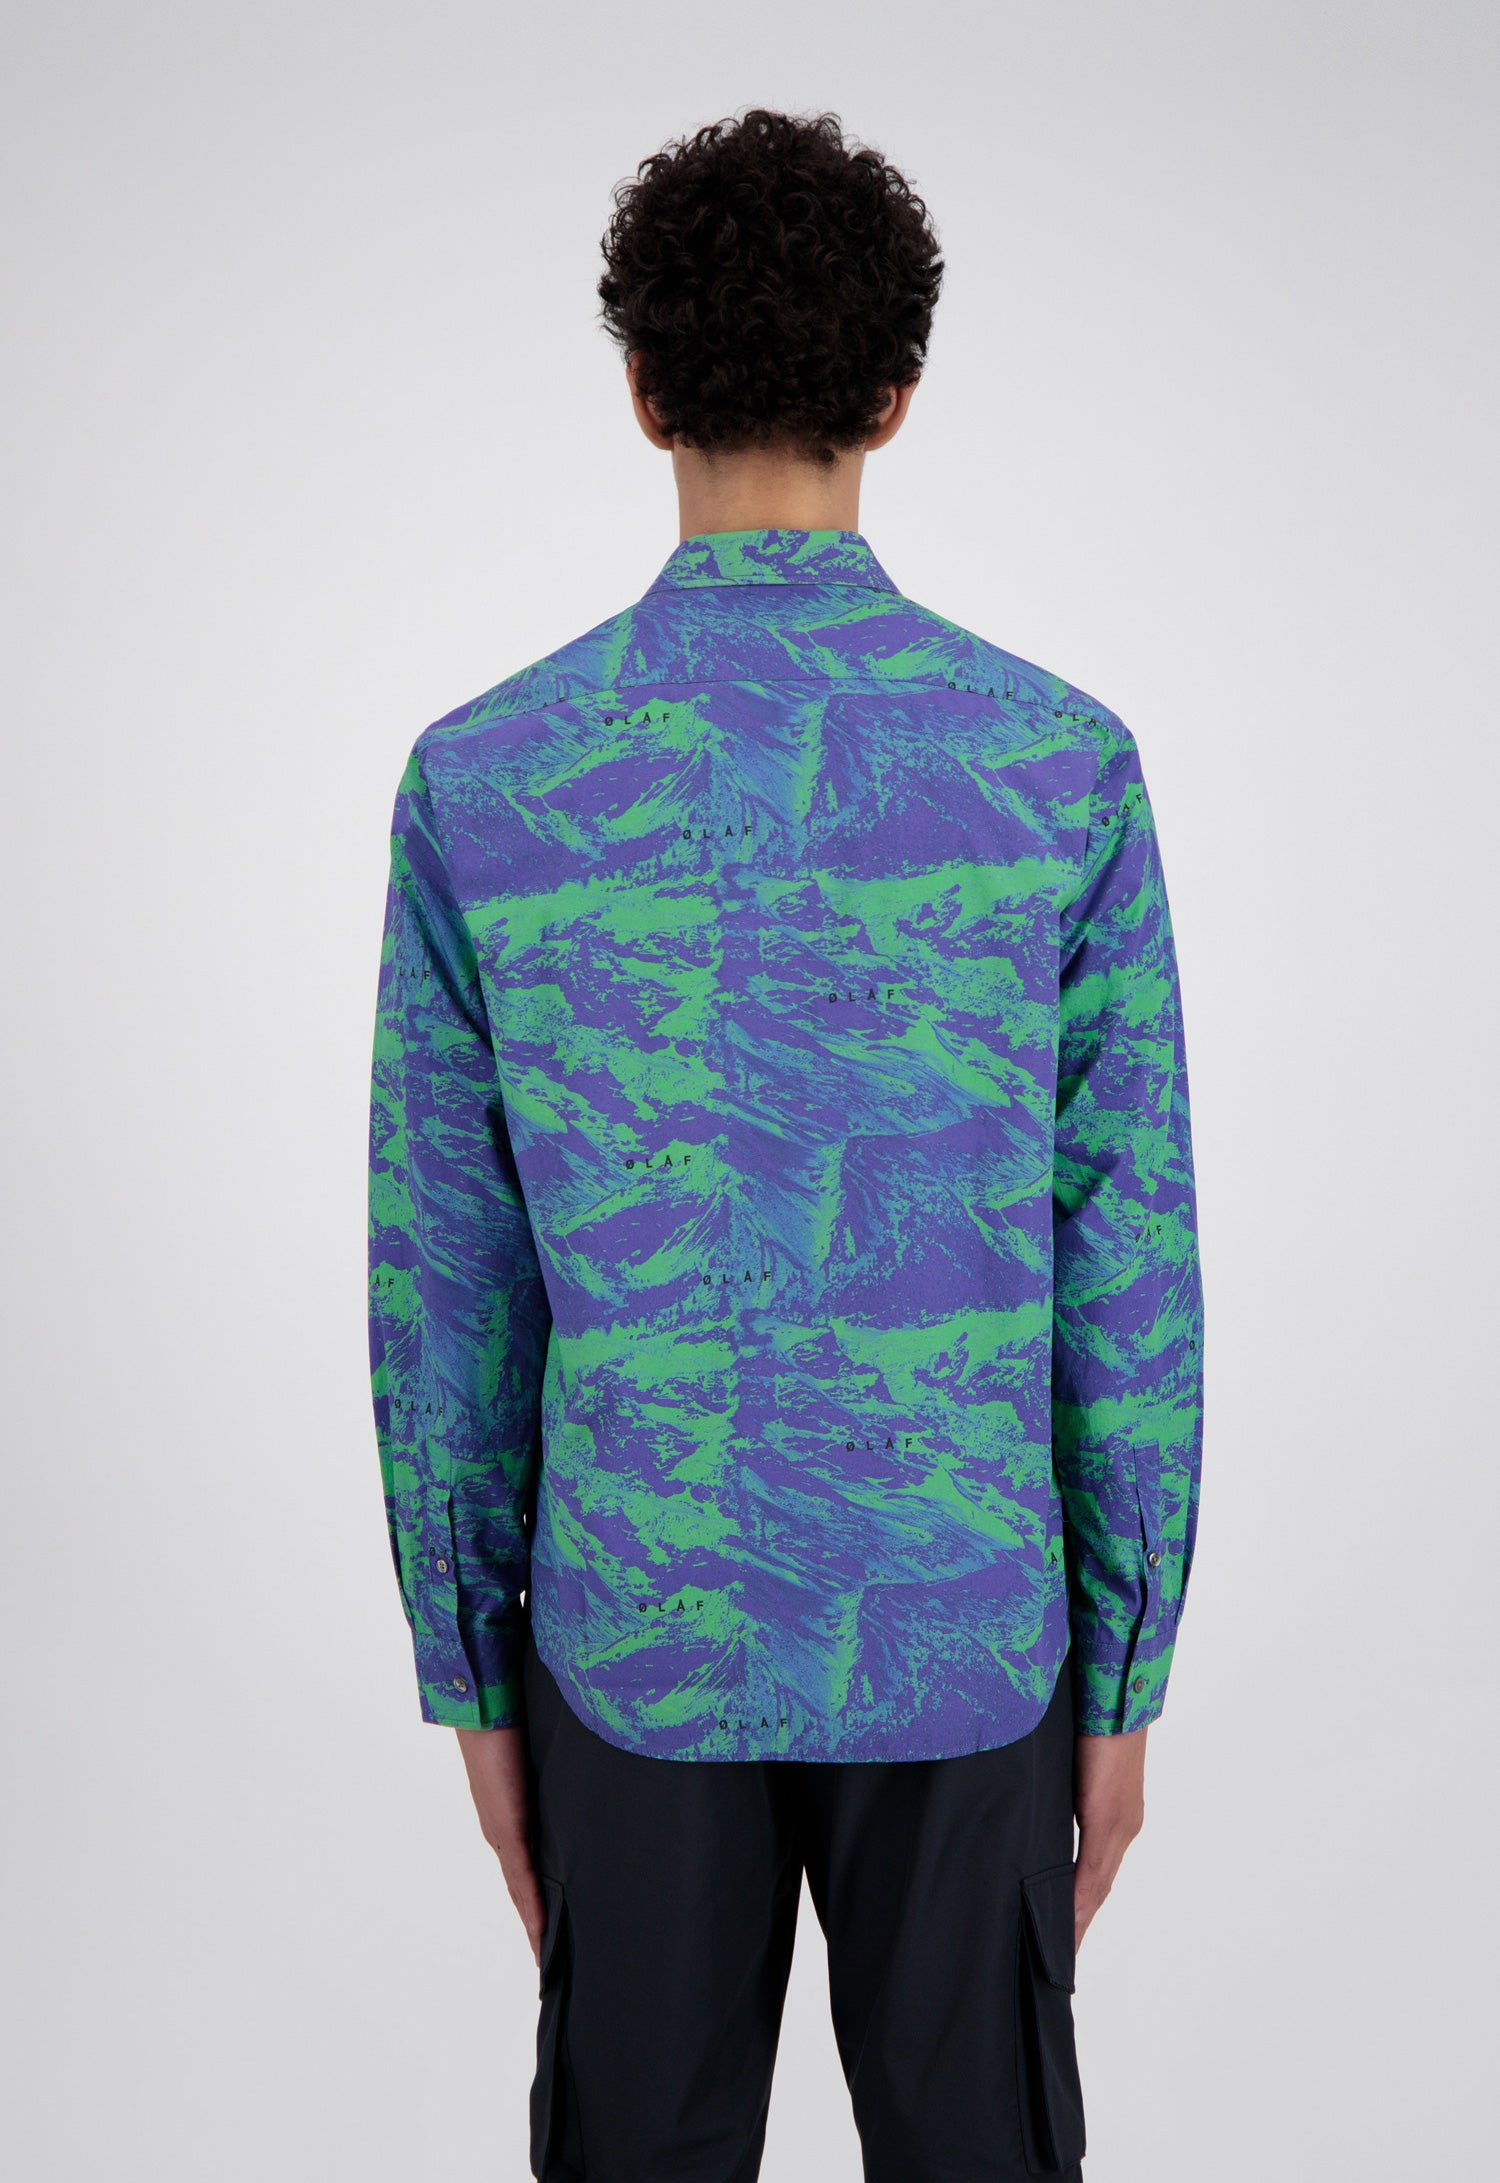 ØLÅF Mountain Print Shirt <br>Blue / Green